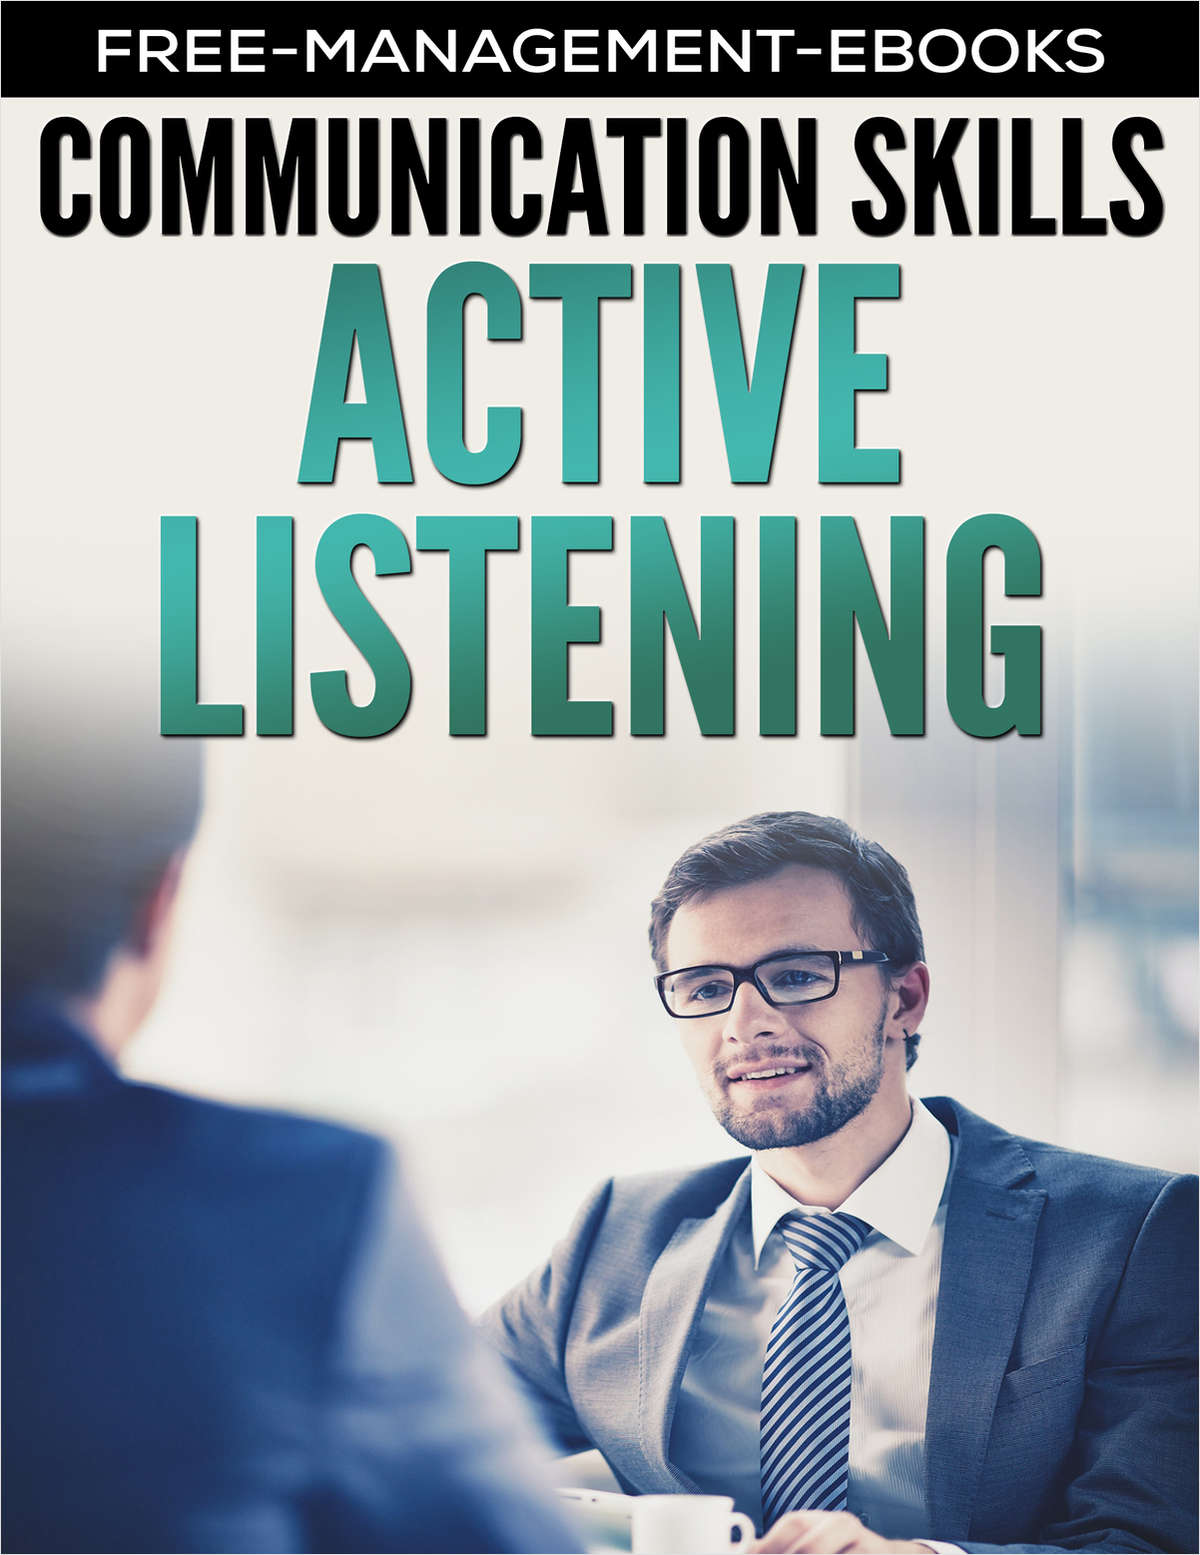 Active Listening -- Developing Your Communication Skills